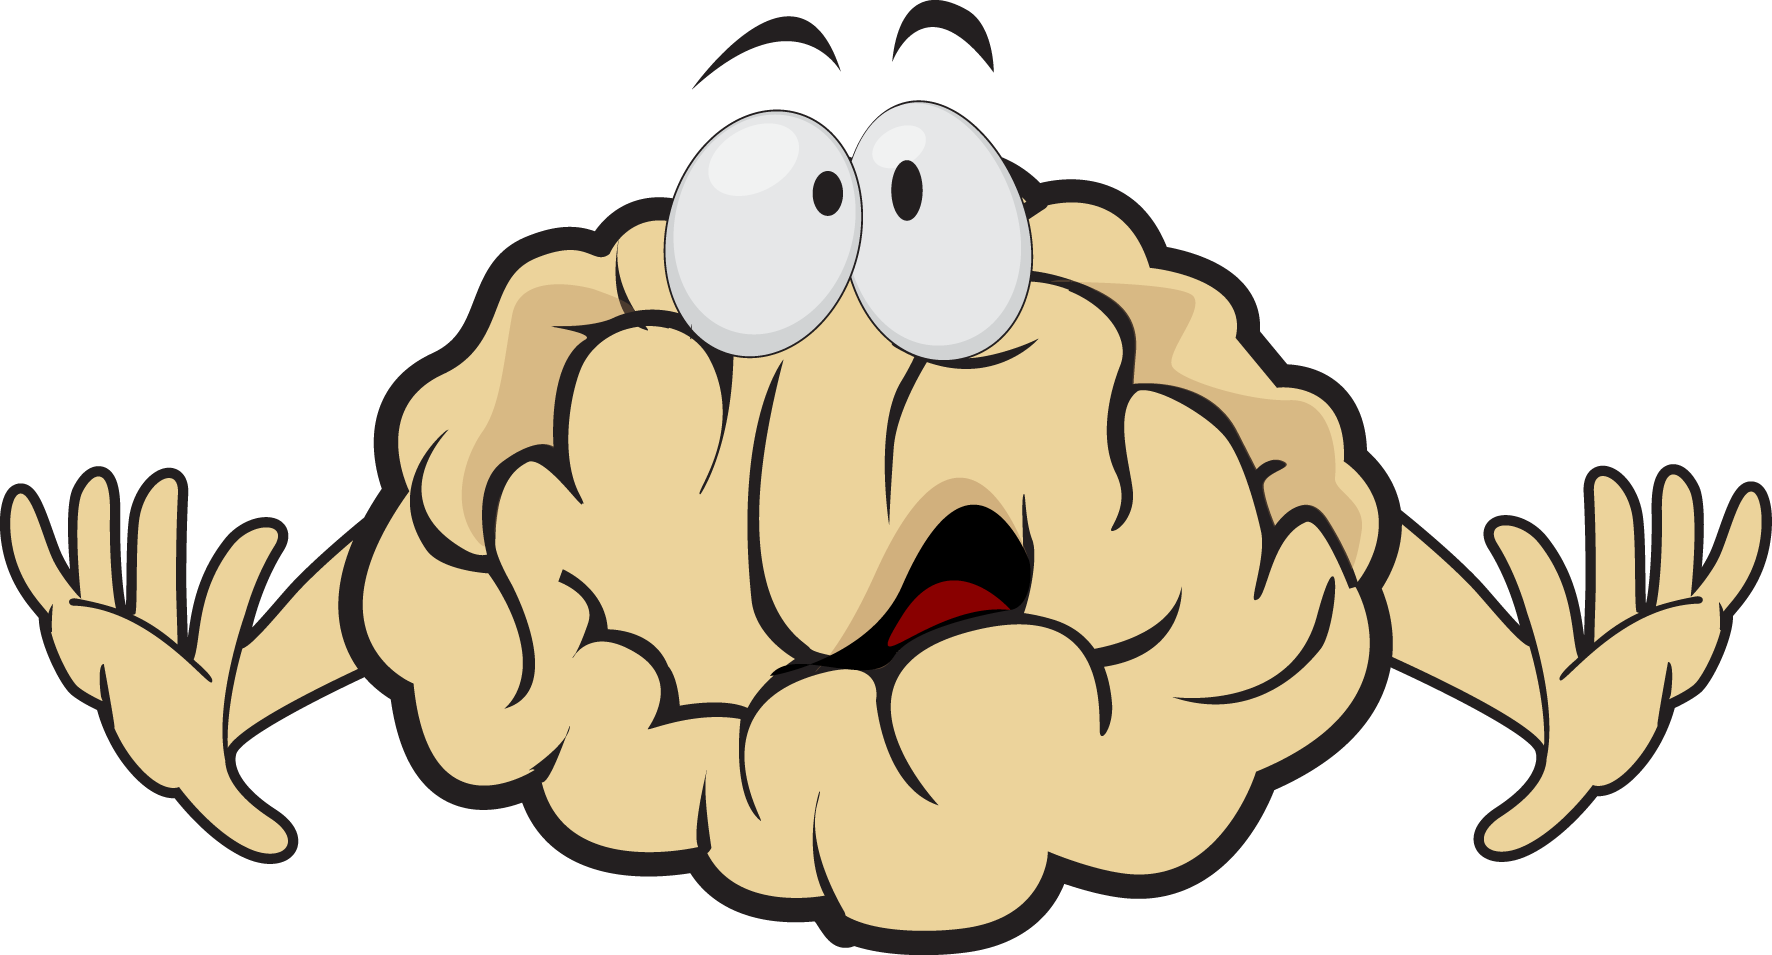 Scared brain wisc online. Monster clipart cutout